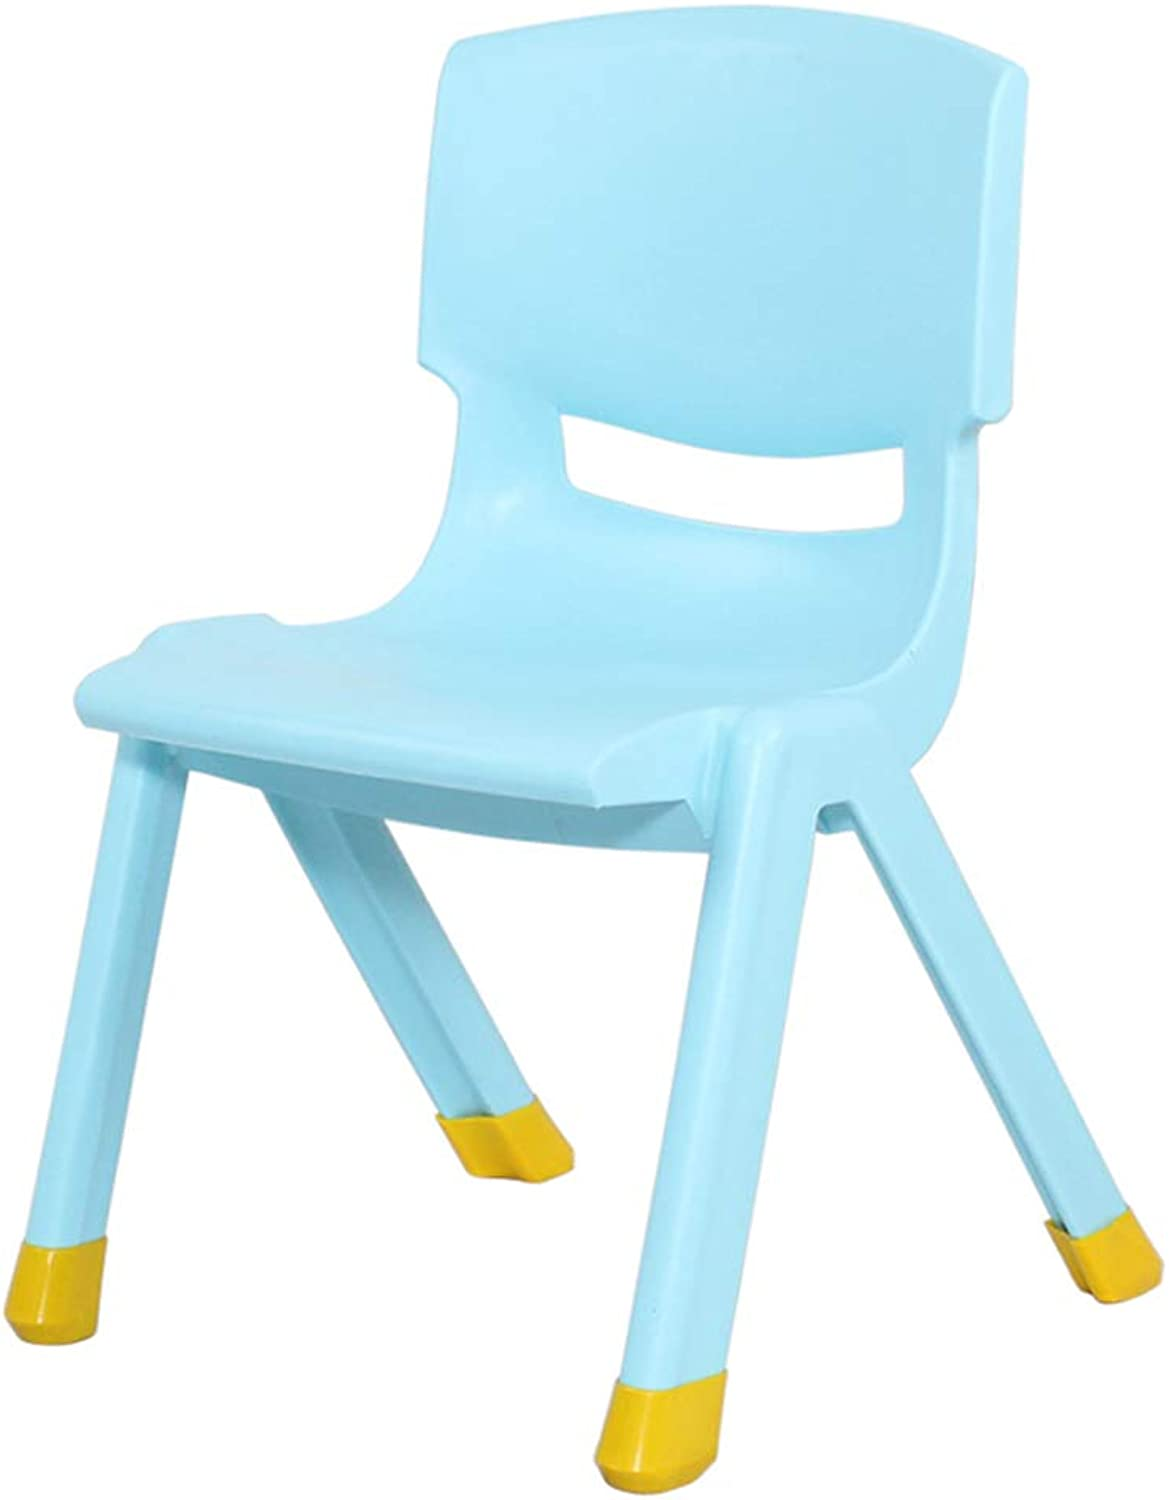 AGLZWY 2 Sets Chair Multipurpose Plastic Thicken Anti-Slip 270° Without Angle Backrest Stool School, 8 colors (color   bluee, Size   32.5X35.5X53CM)